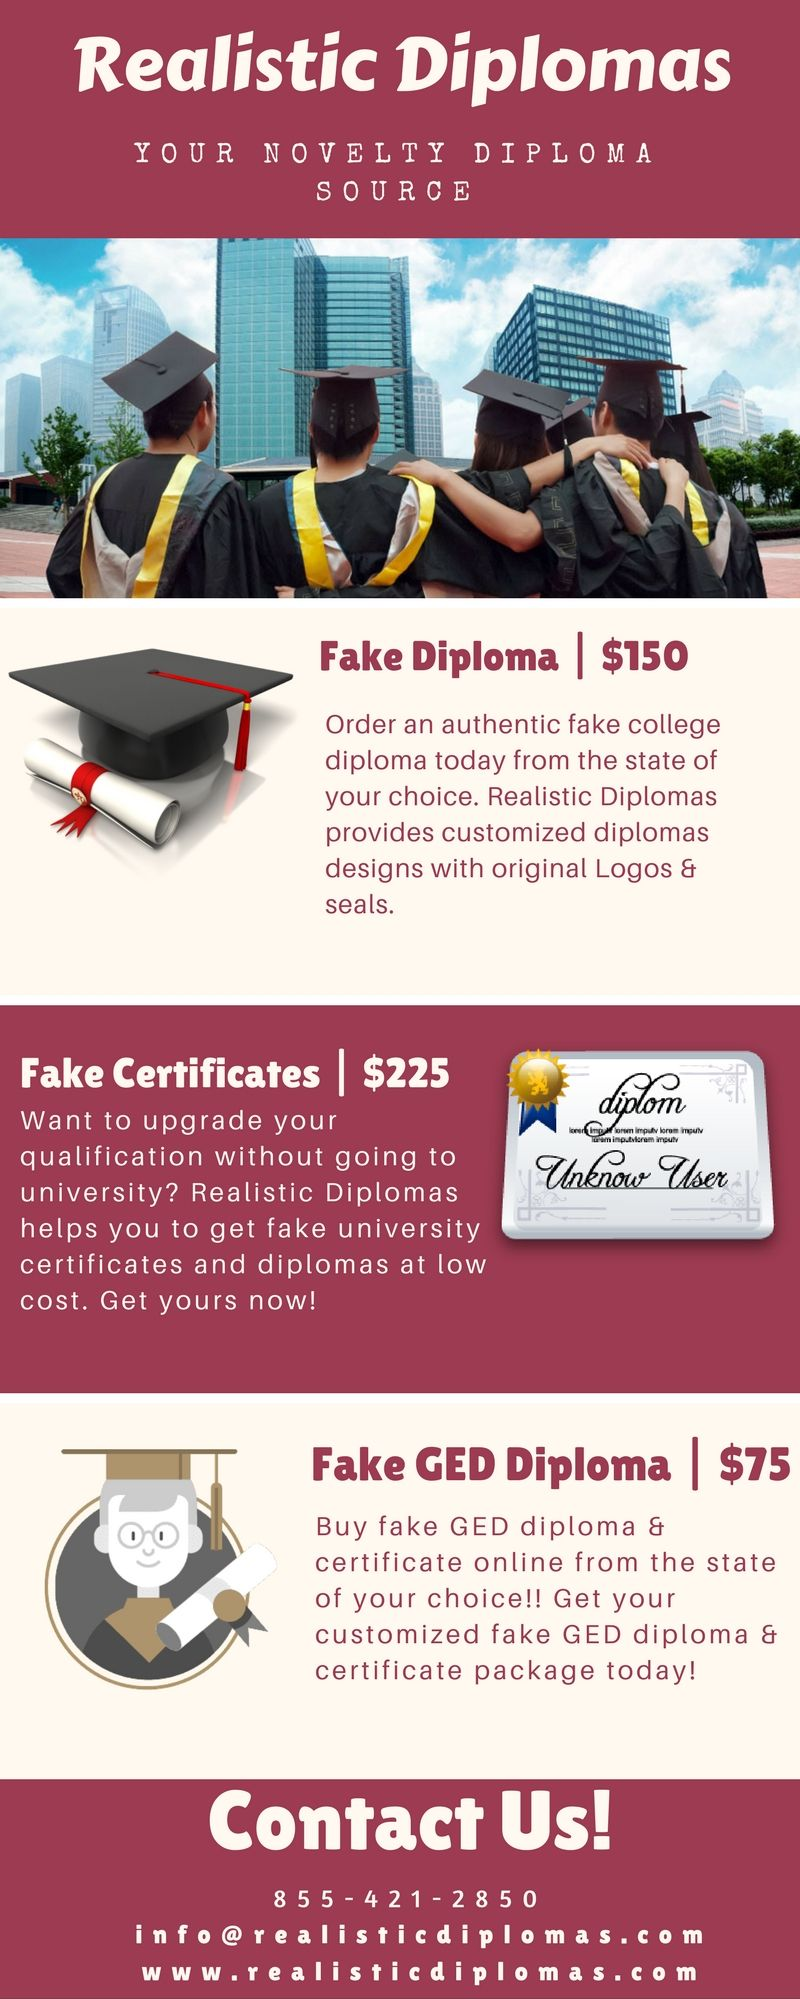 want to buy fake diplomas fake certificates and fake ged diploma with less cost realistic diplomas provides many novelty college diploma designs with